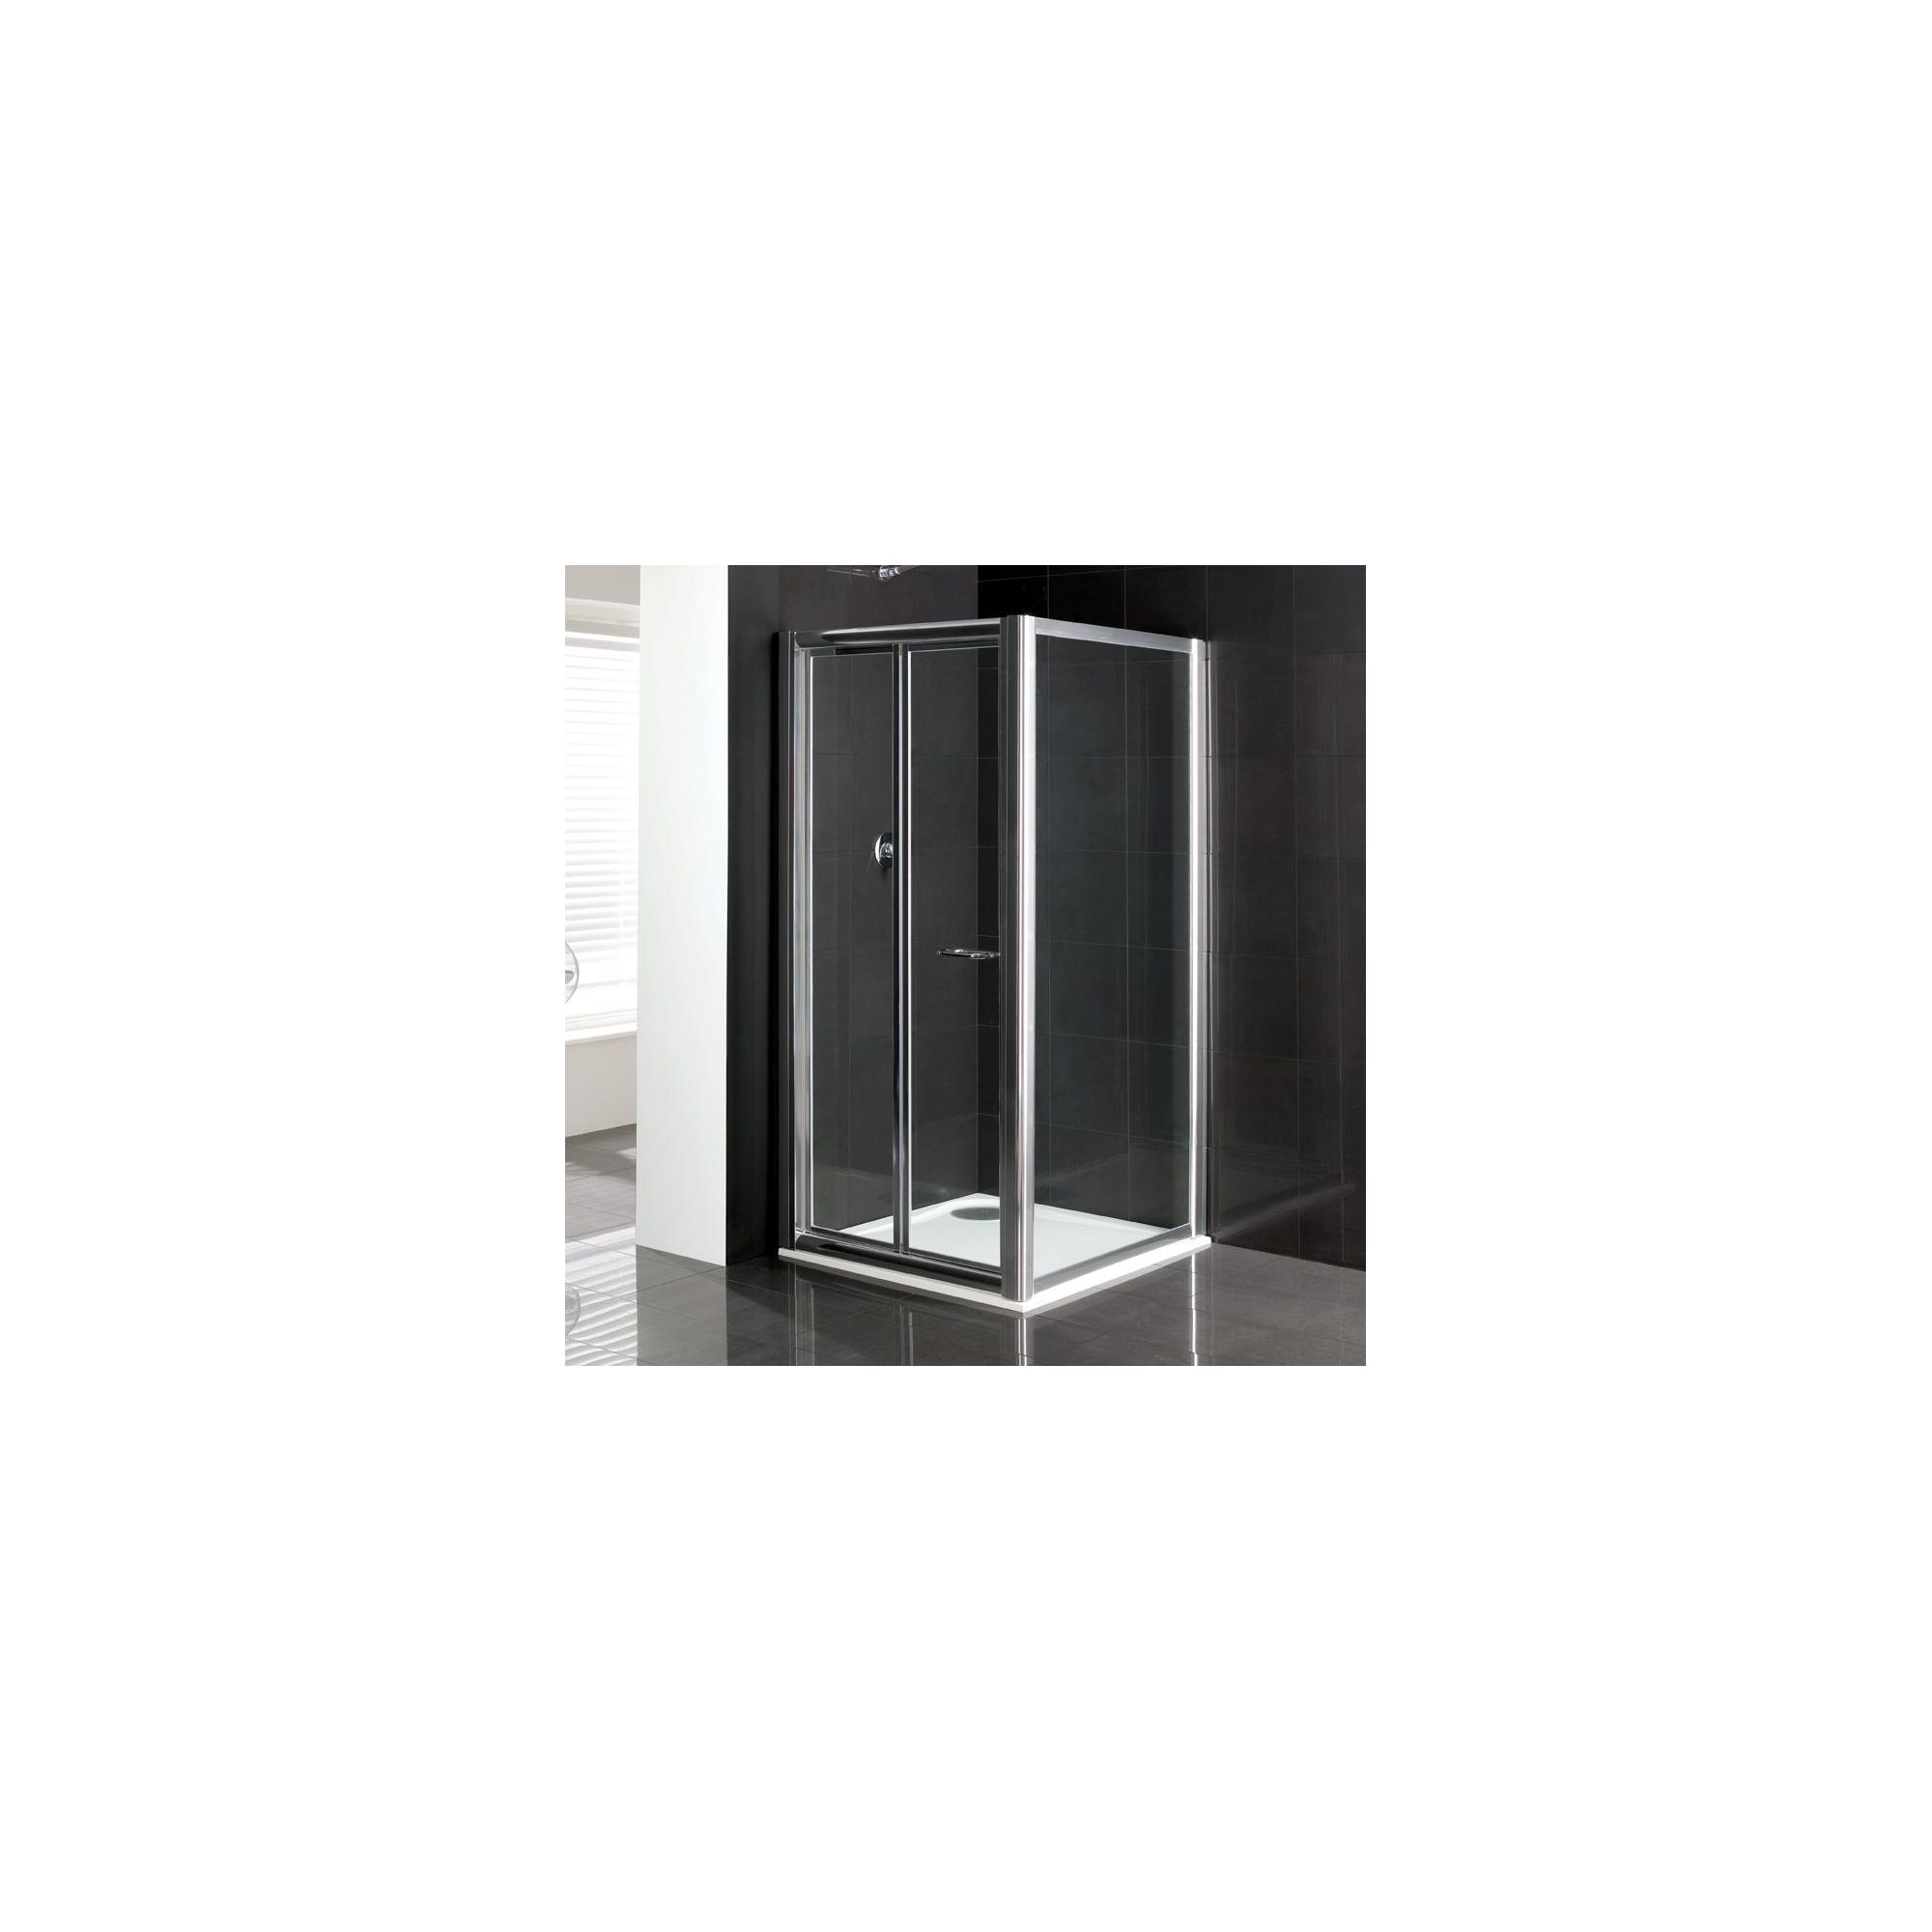 Duchy Elite Silver Bi-Fold Door Shower Enclosure with Towel Rail, 900mm x 800mm, Standard Tray, 6mm Glass at Tesco Direct